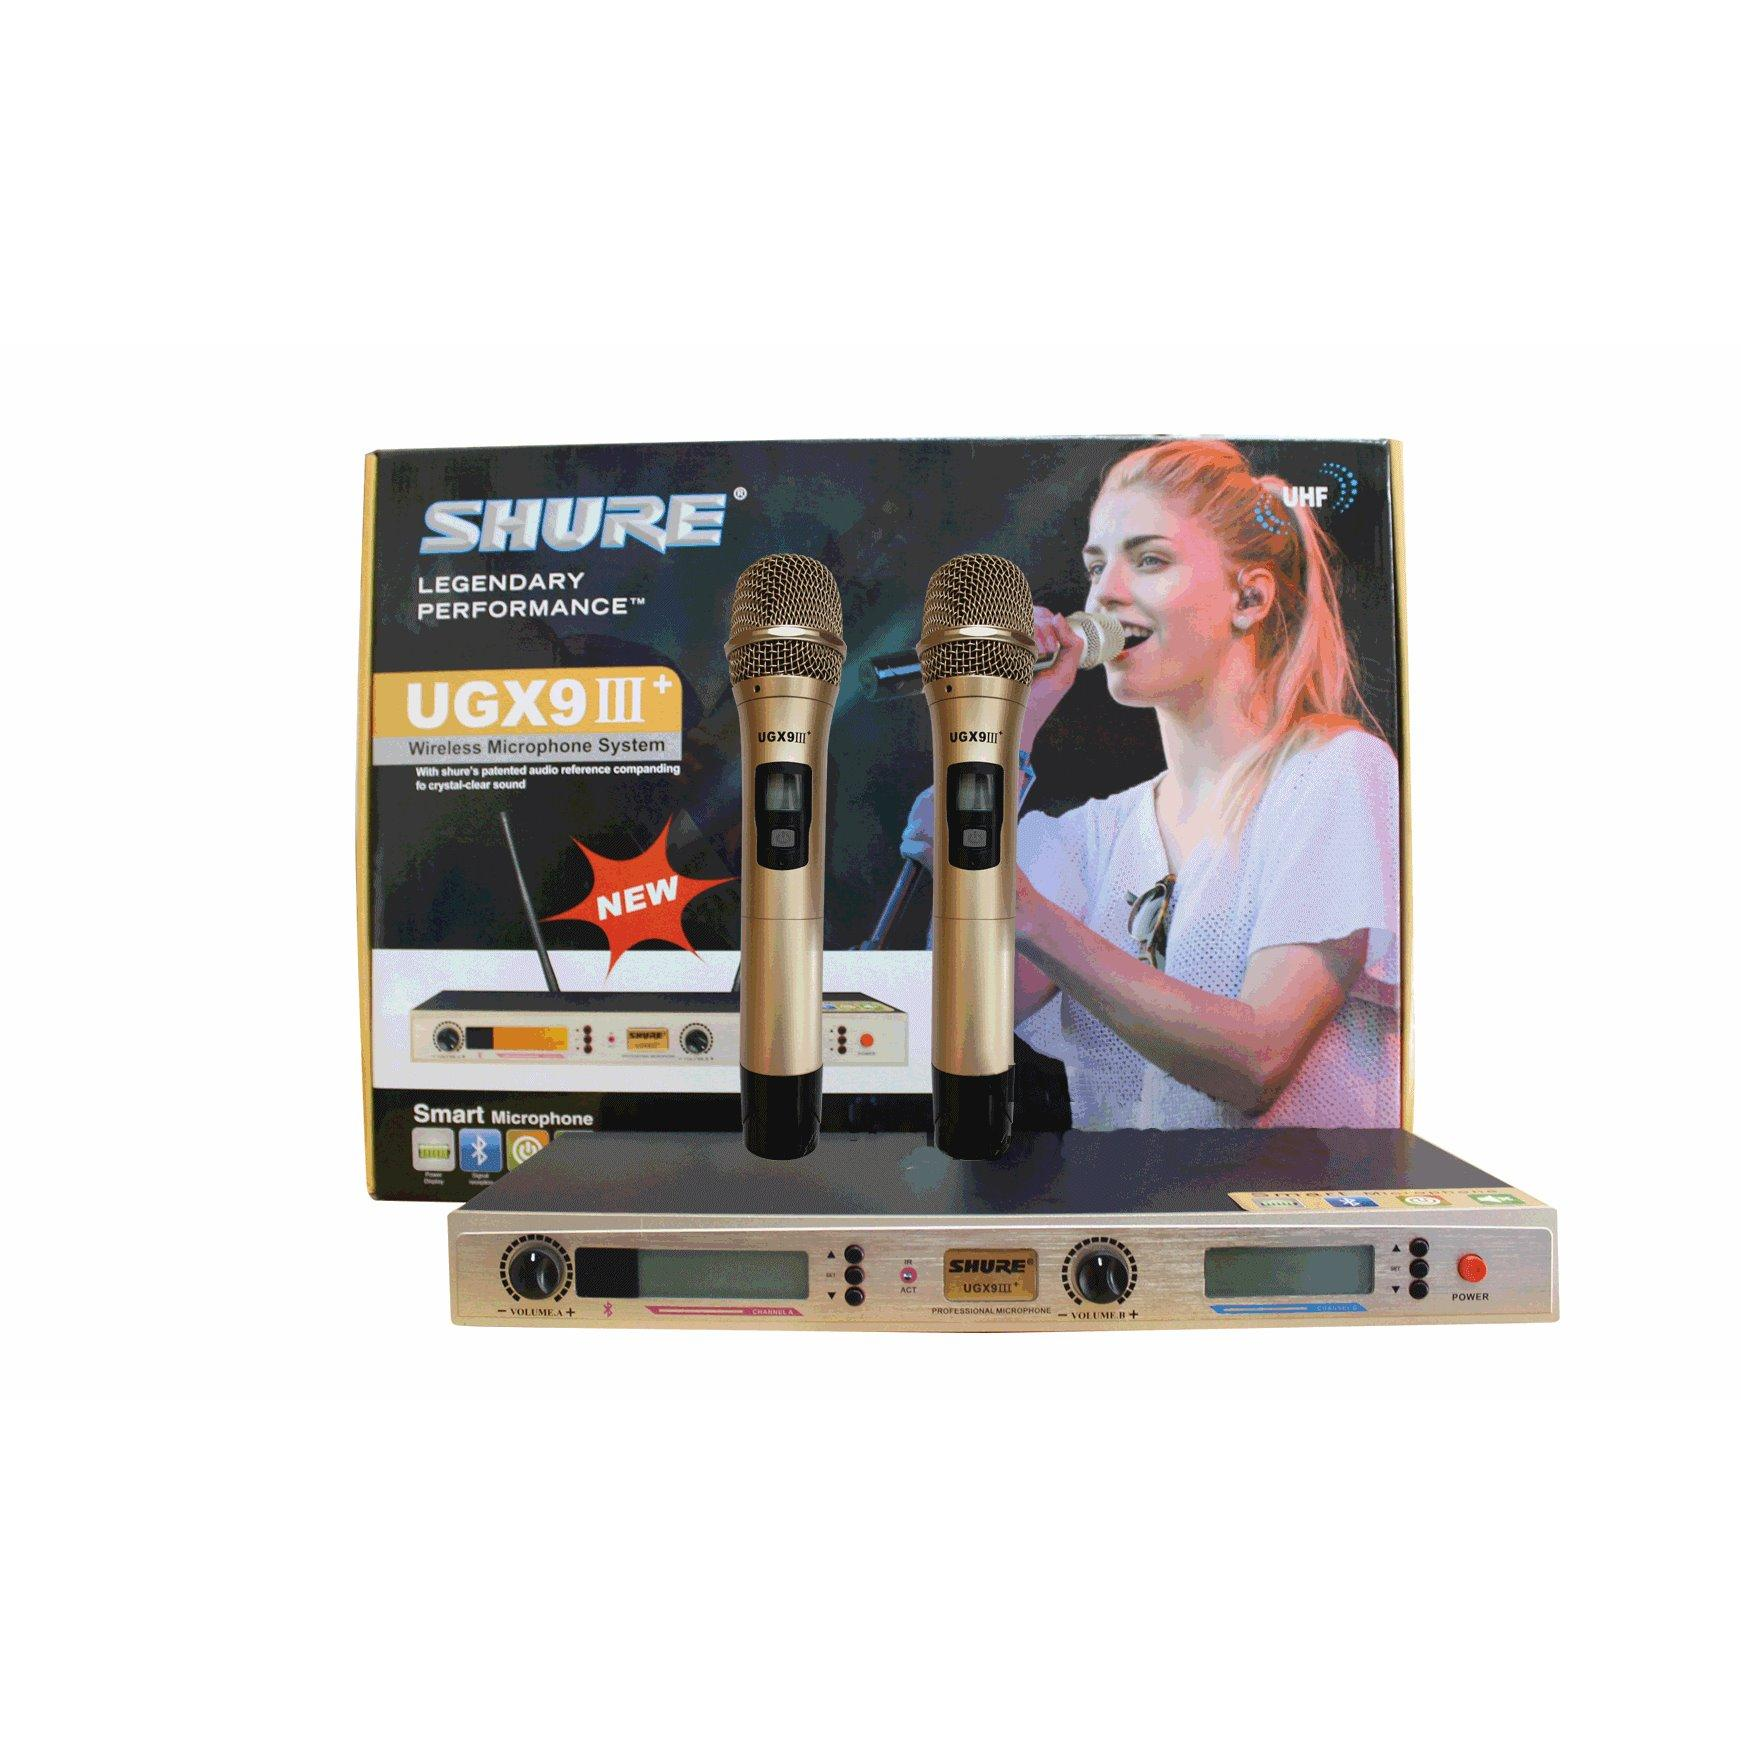 Shure Speaker Philippines - Shure Bluetooth Speaker for sale - prices &  reviews | Lazada